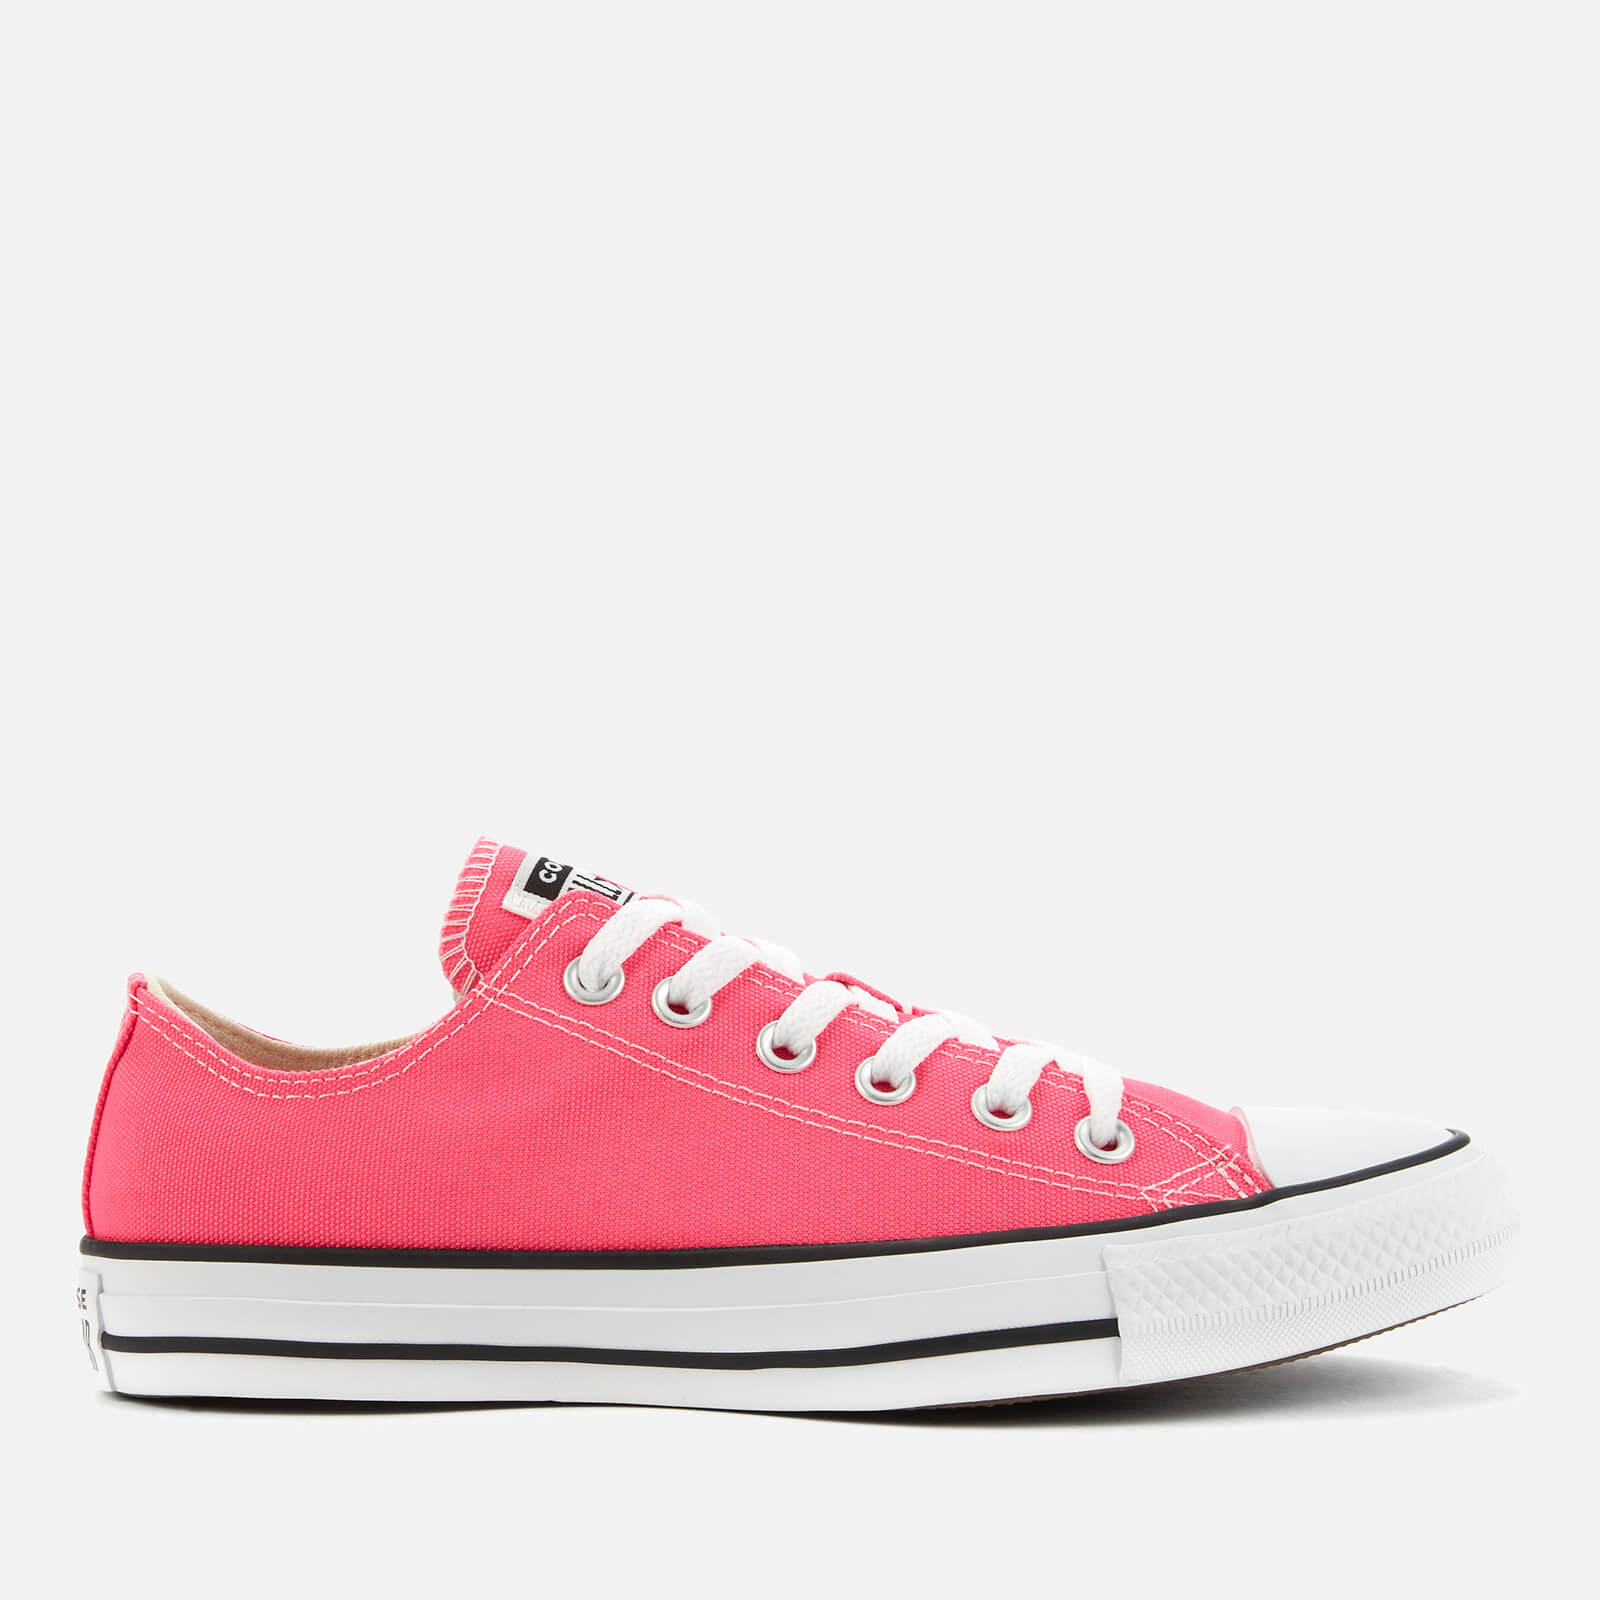 Converse Women's Chuck Taylor All Star Canvas Ox Trainers - Pink - UK 6